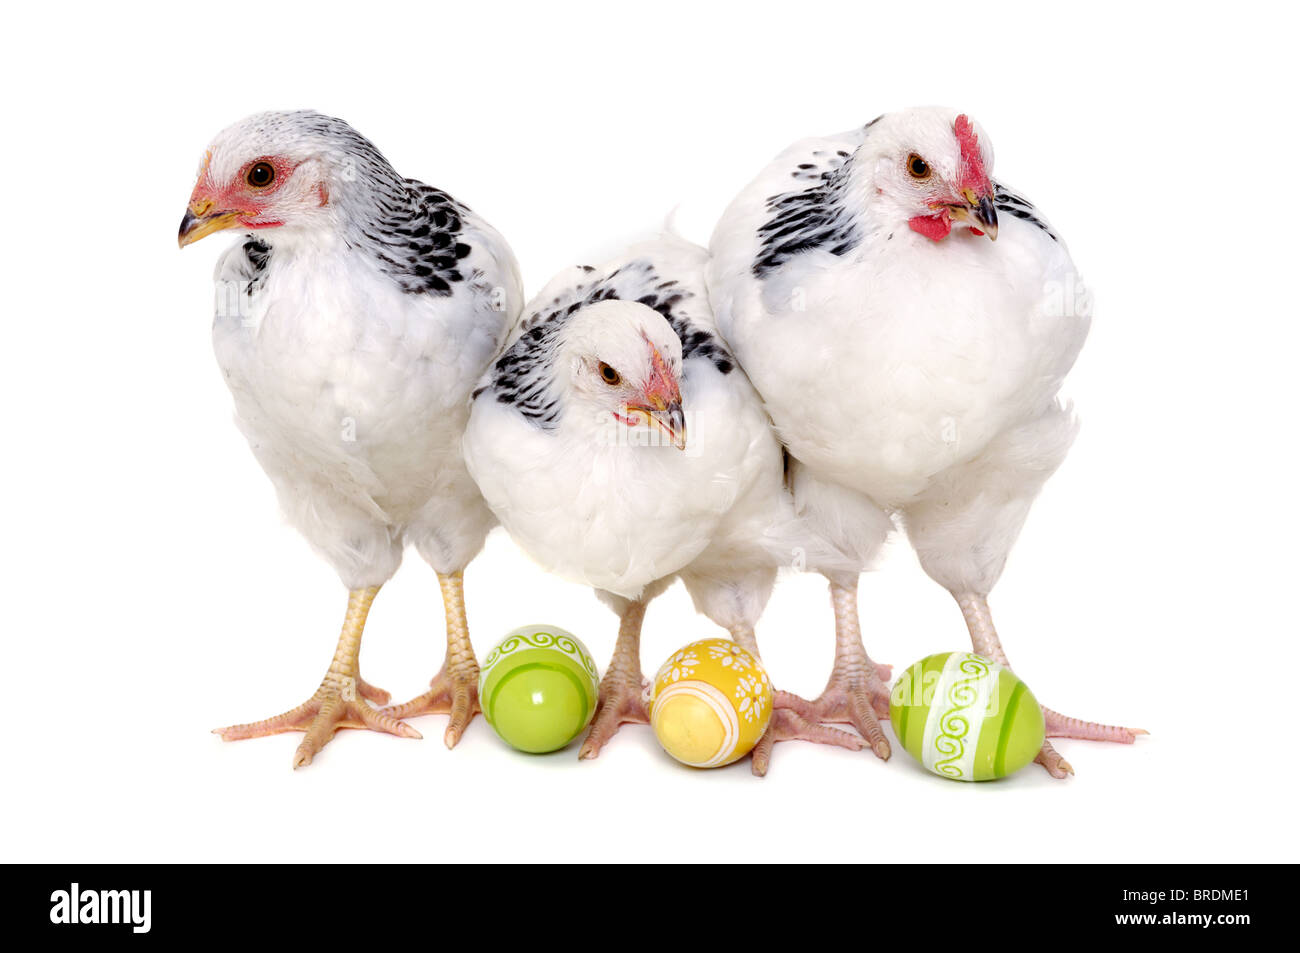 Chickens with easter eggs. Isolated on a white background. - Stock Image